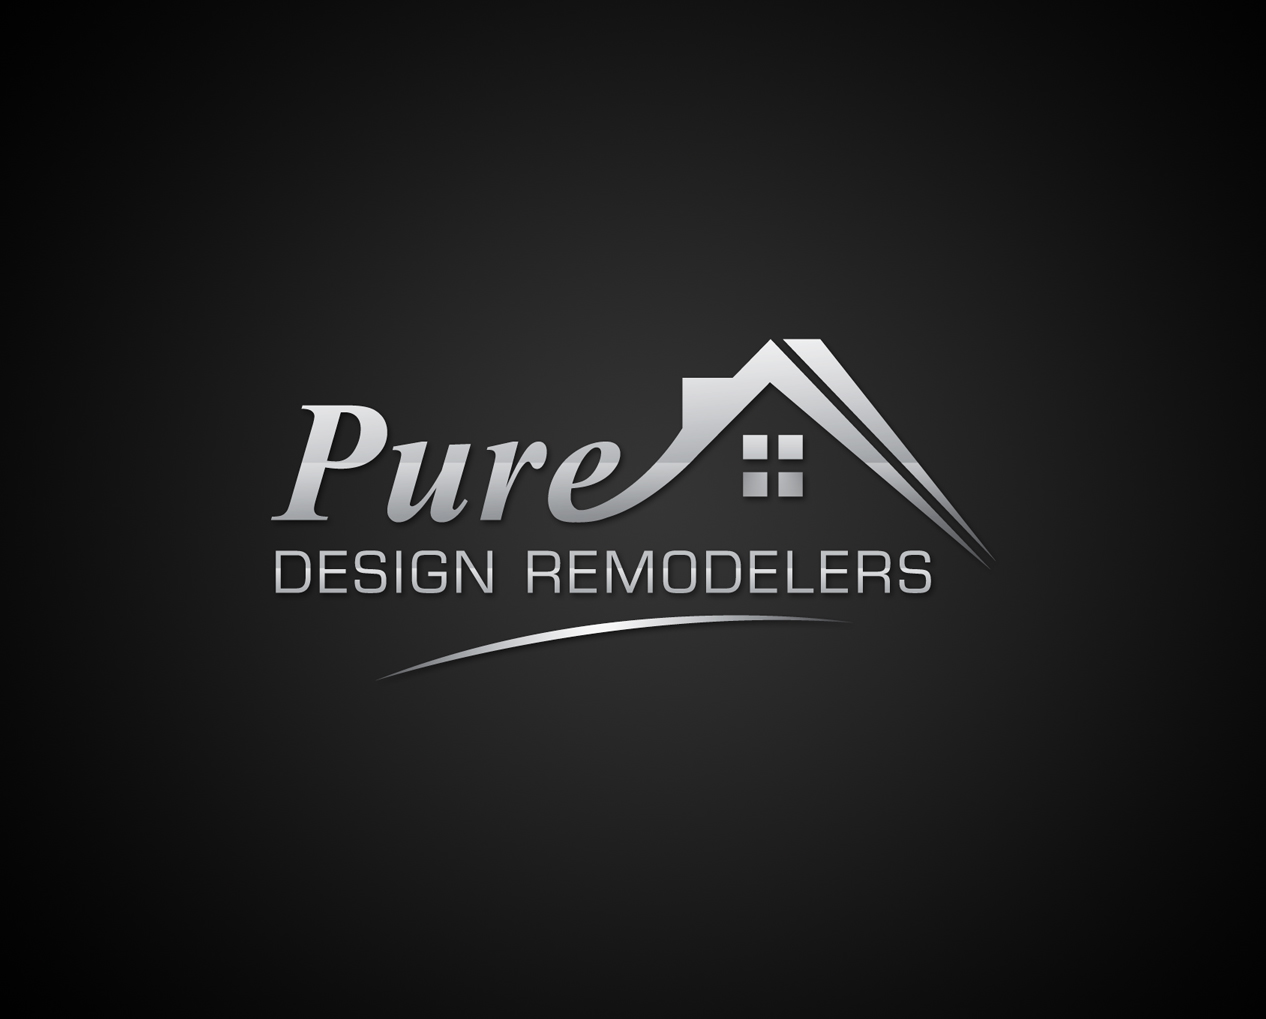 Logo Design by Creasian - Entry No. 127 in the Logo Design Contest Custom Logo Design for Pure Design Remodelers.